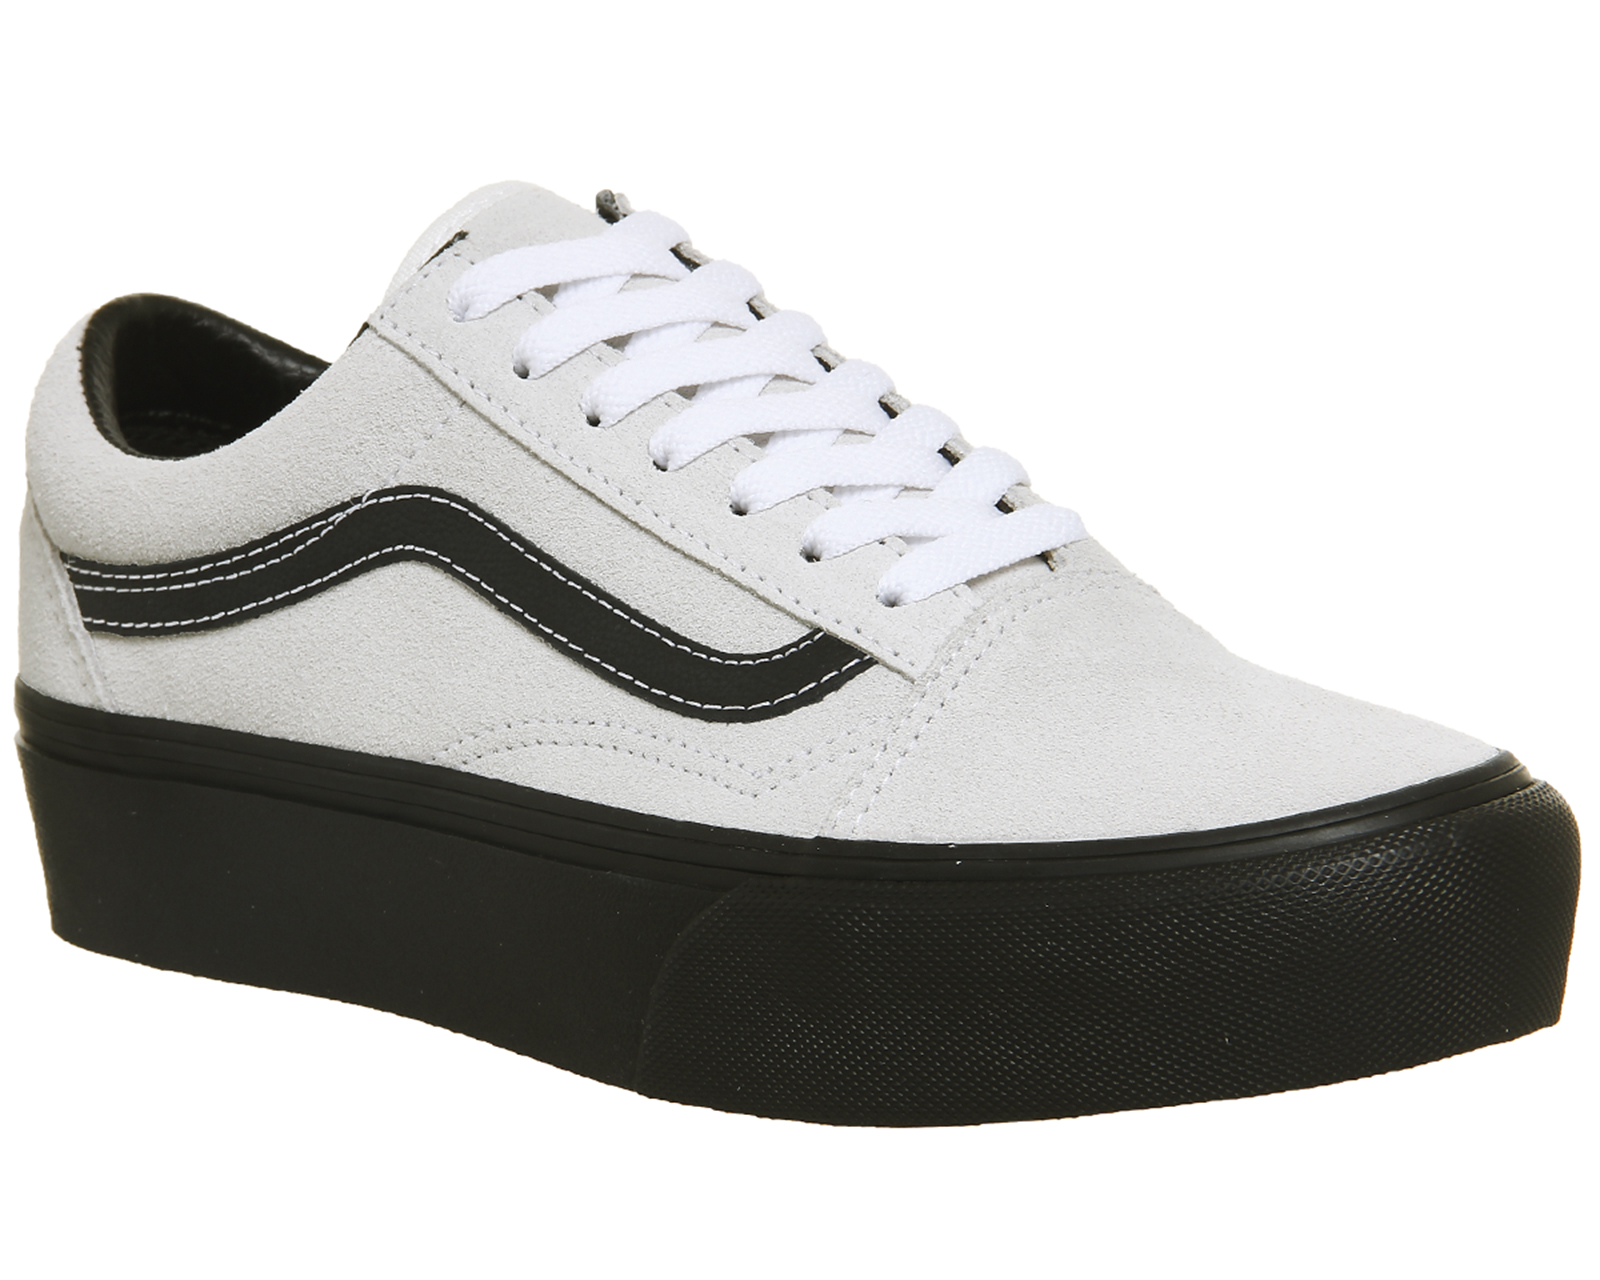 3b6afe670e9c78 Sentinel Womens Vans Old Skool Platforms BLANC BLACK Trainers Shoes